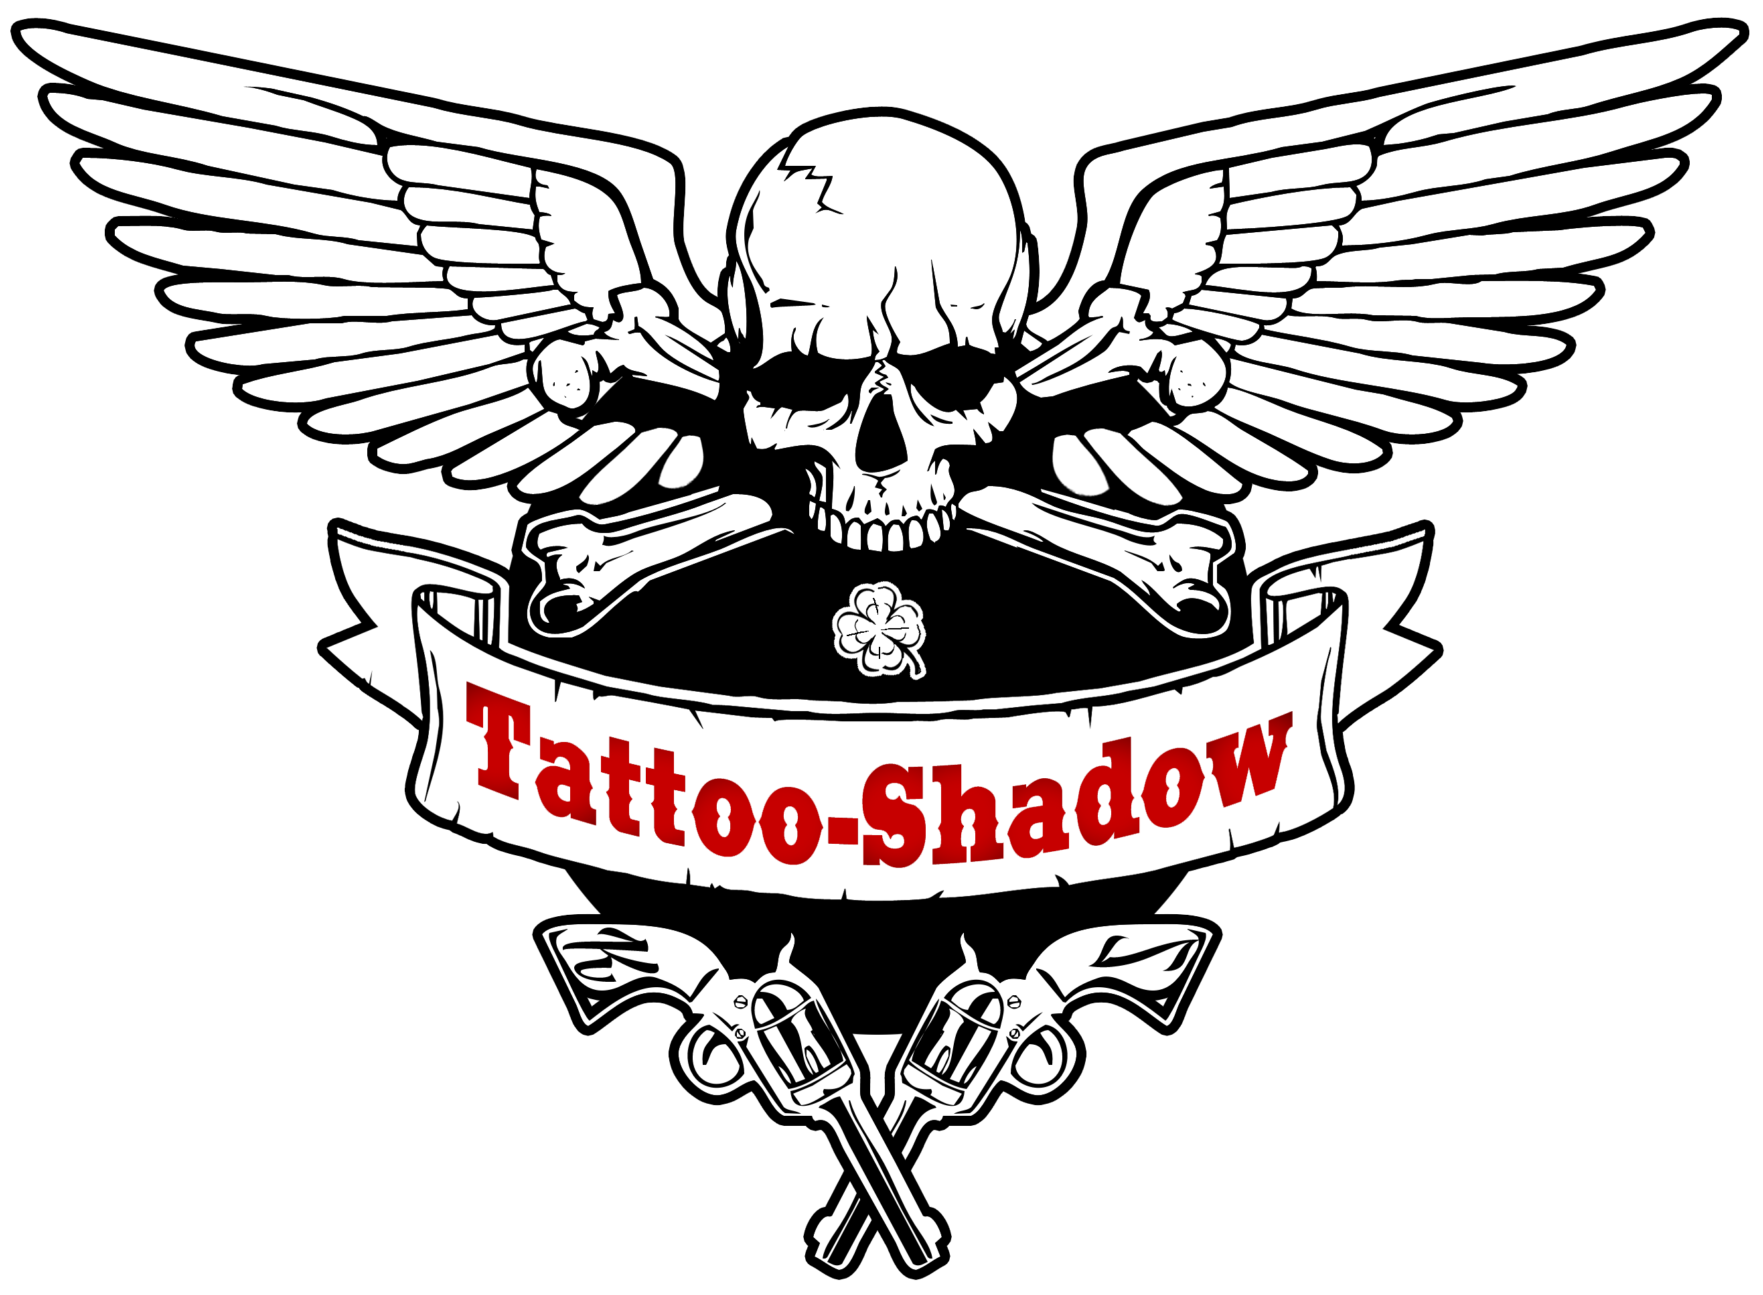 tattoo-shadow.de